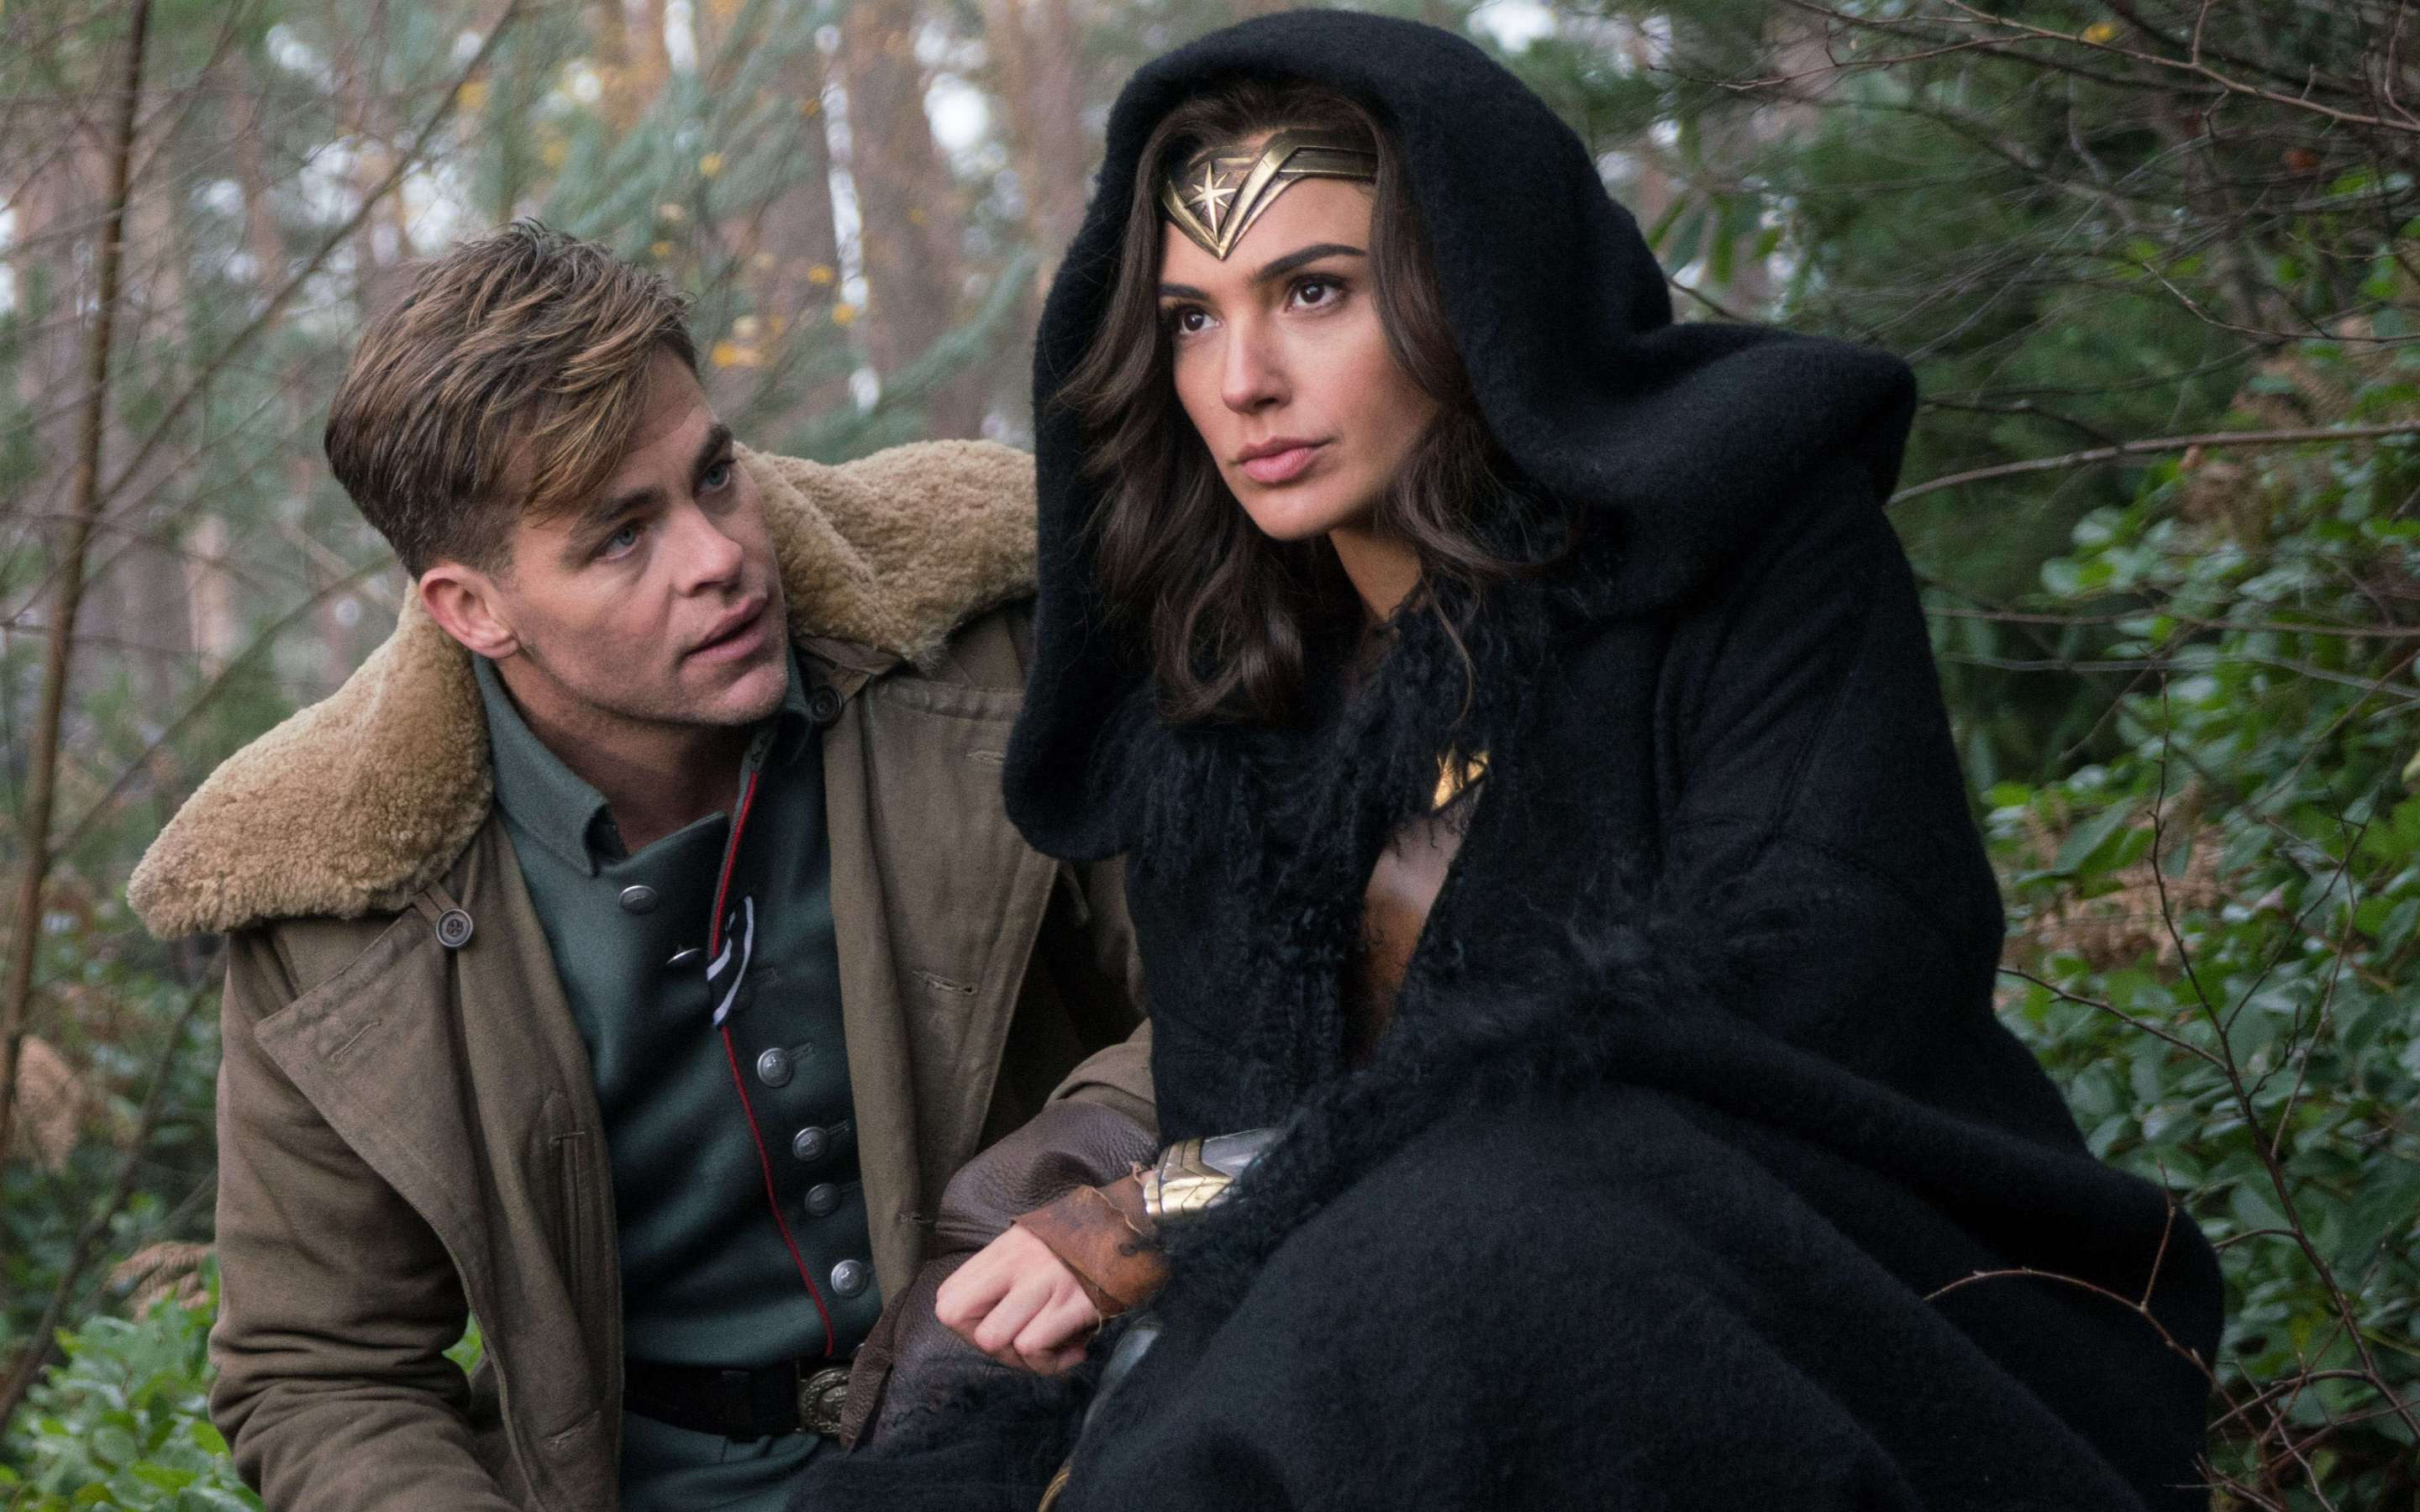 Steve Trevor And Diana Prince In Wonder Woman Click To View